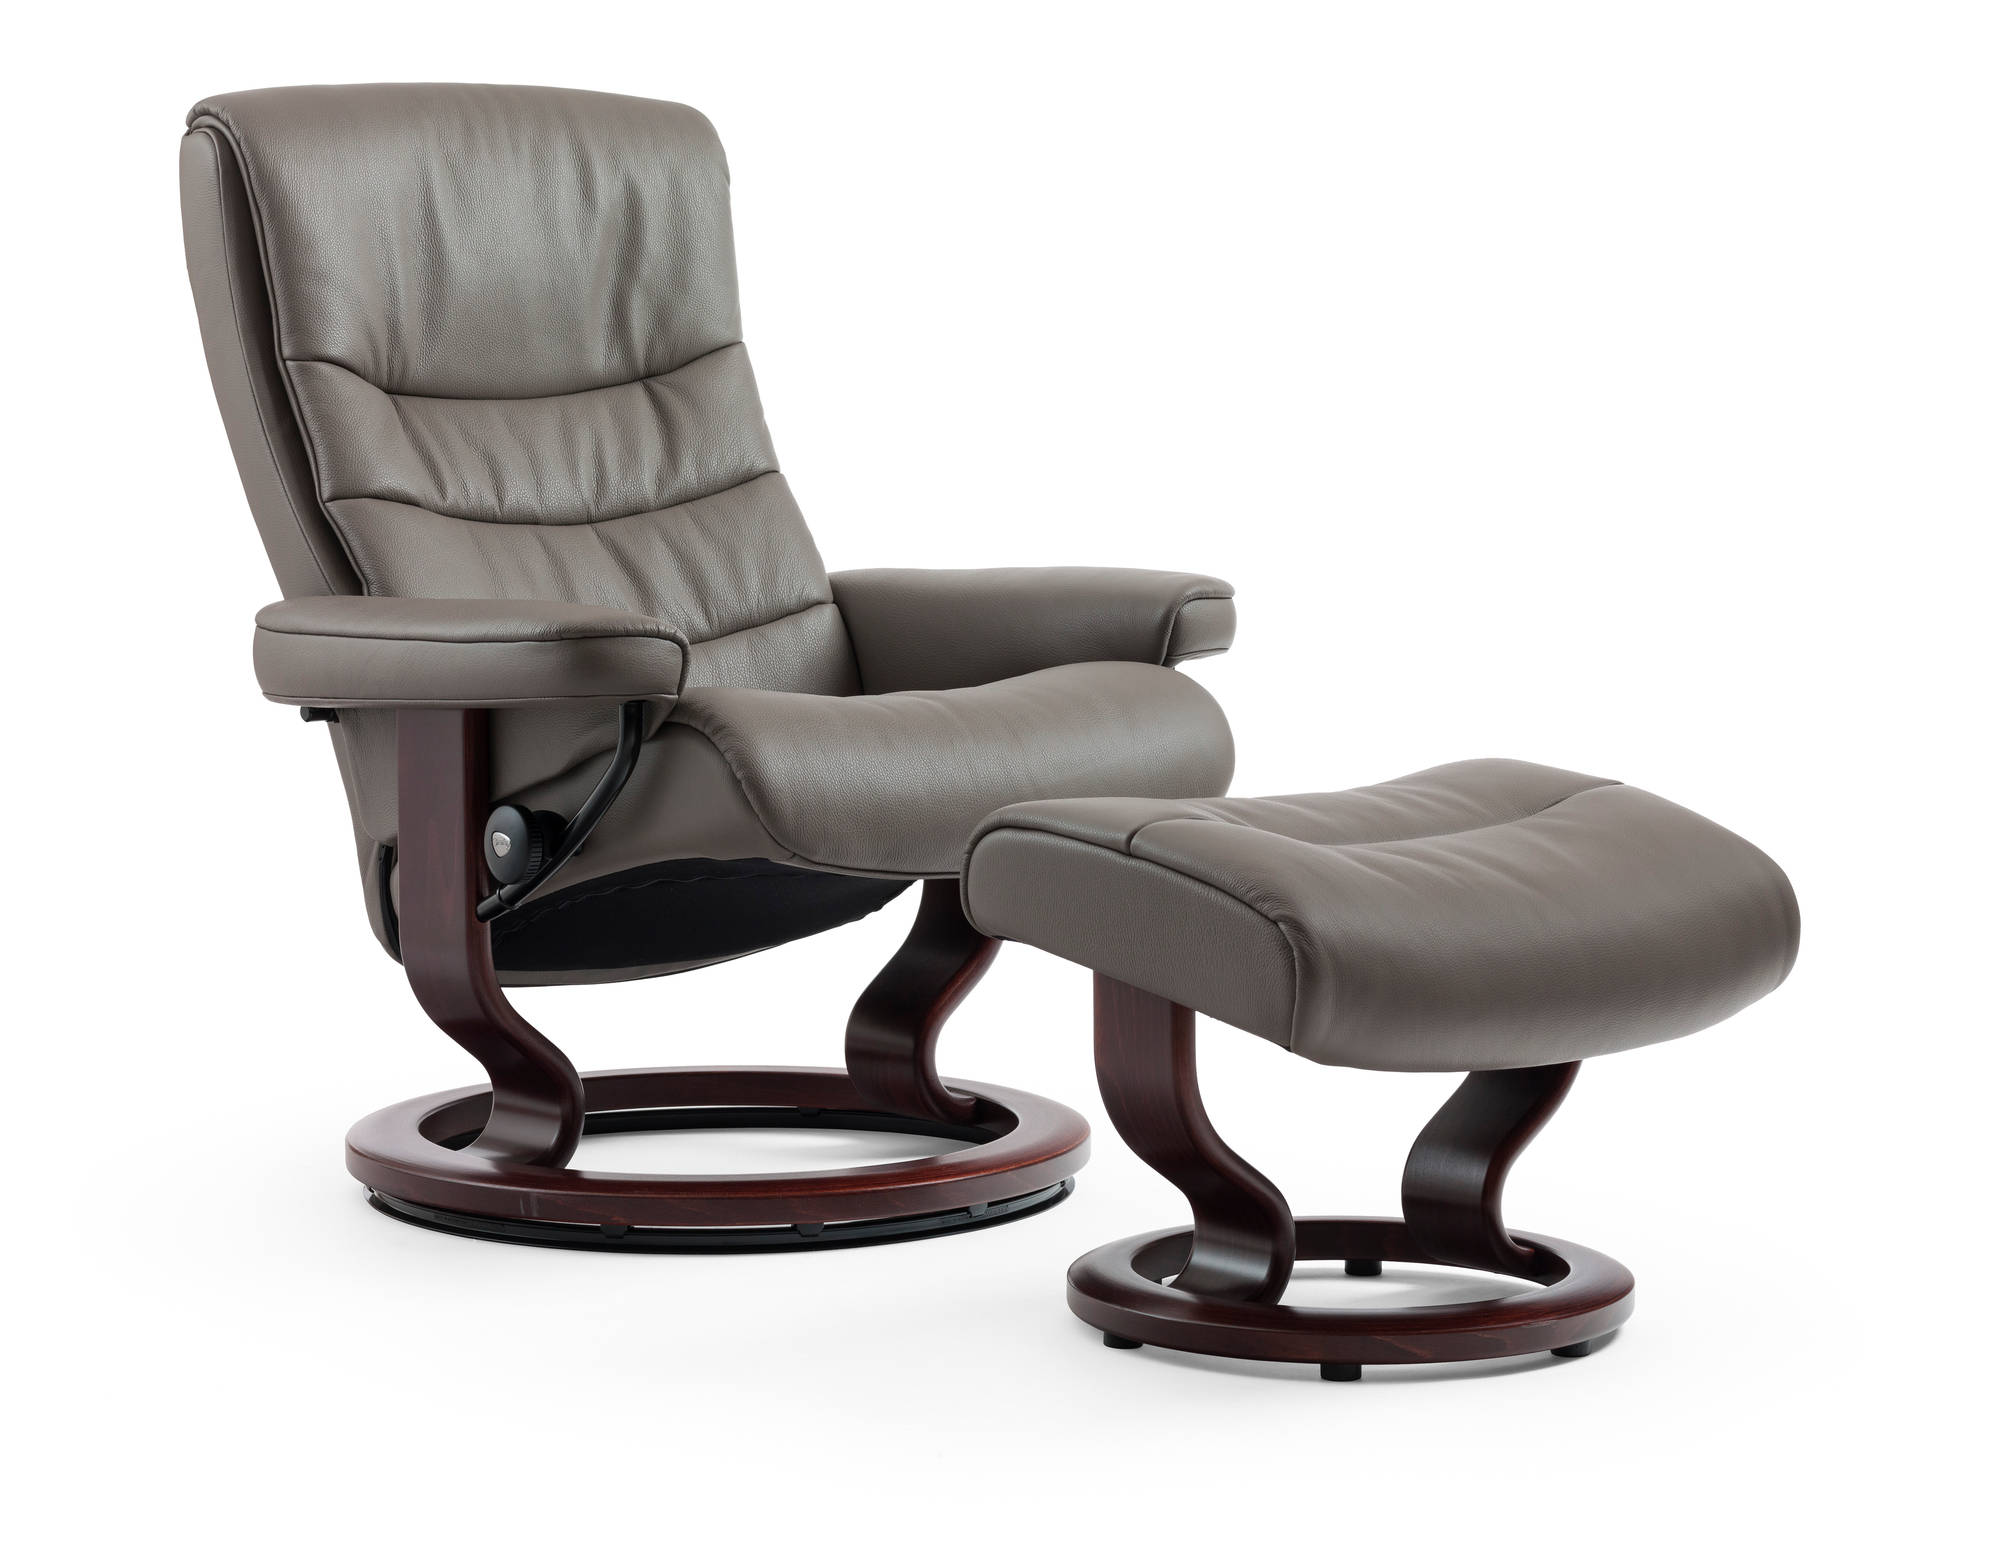 Ekornes Stressless Nordic Recliner and Ottoman large Pain Free